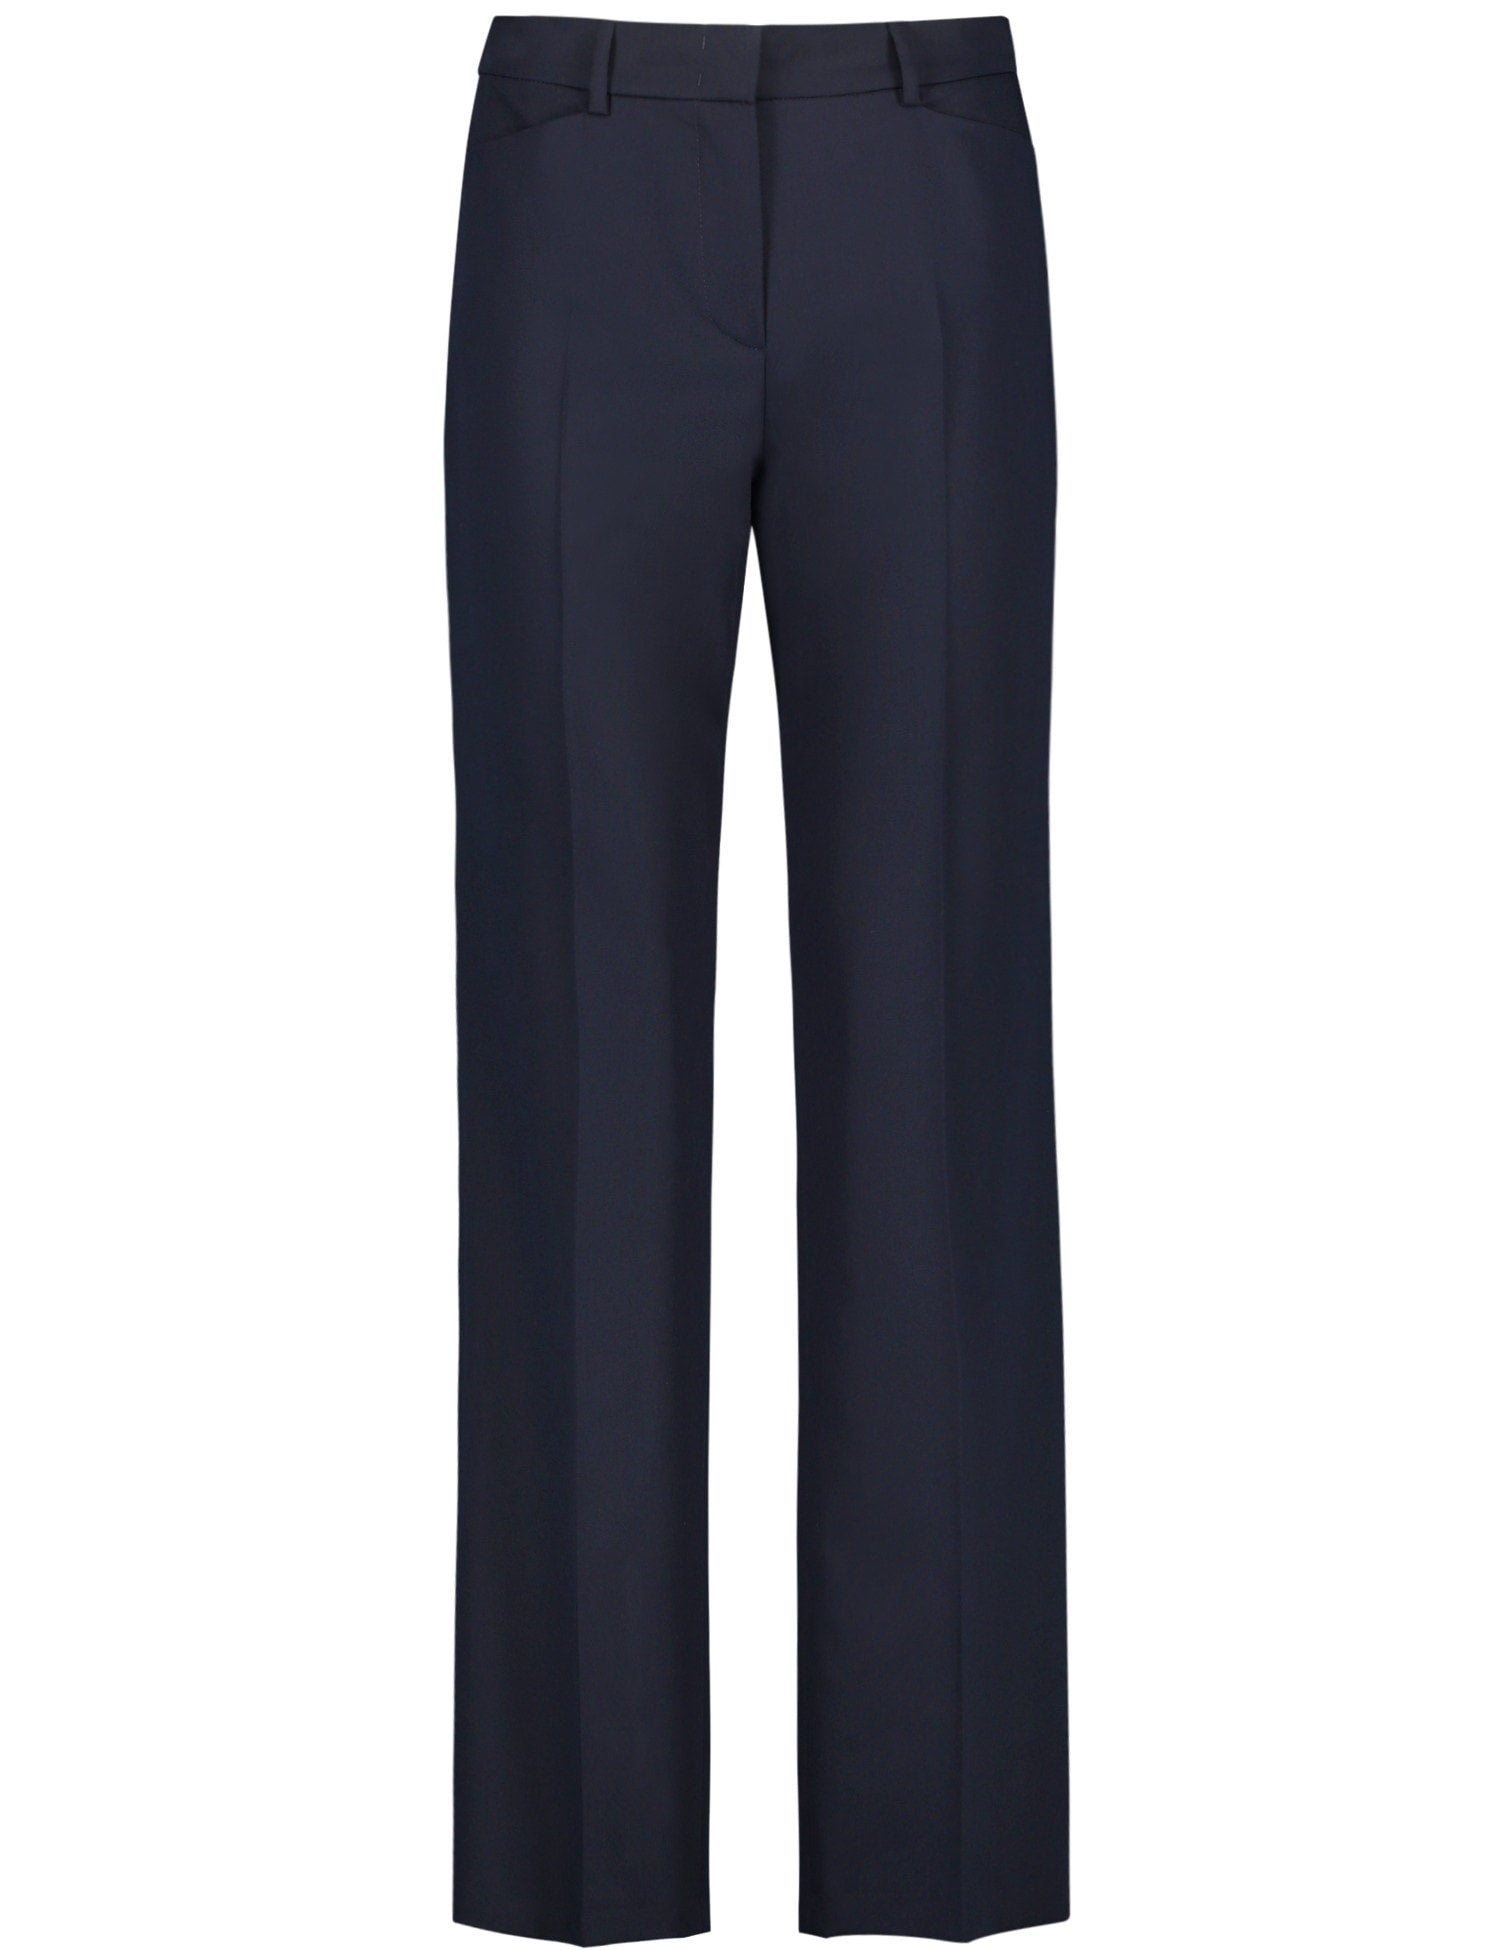 Gerry Weber Black Trousers 92380